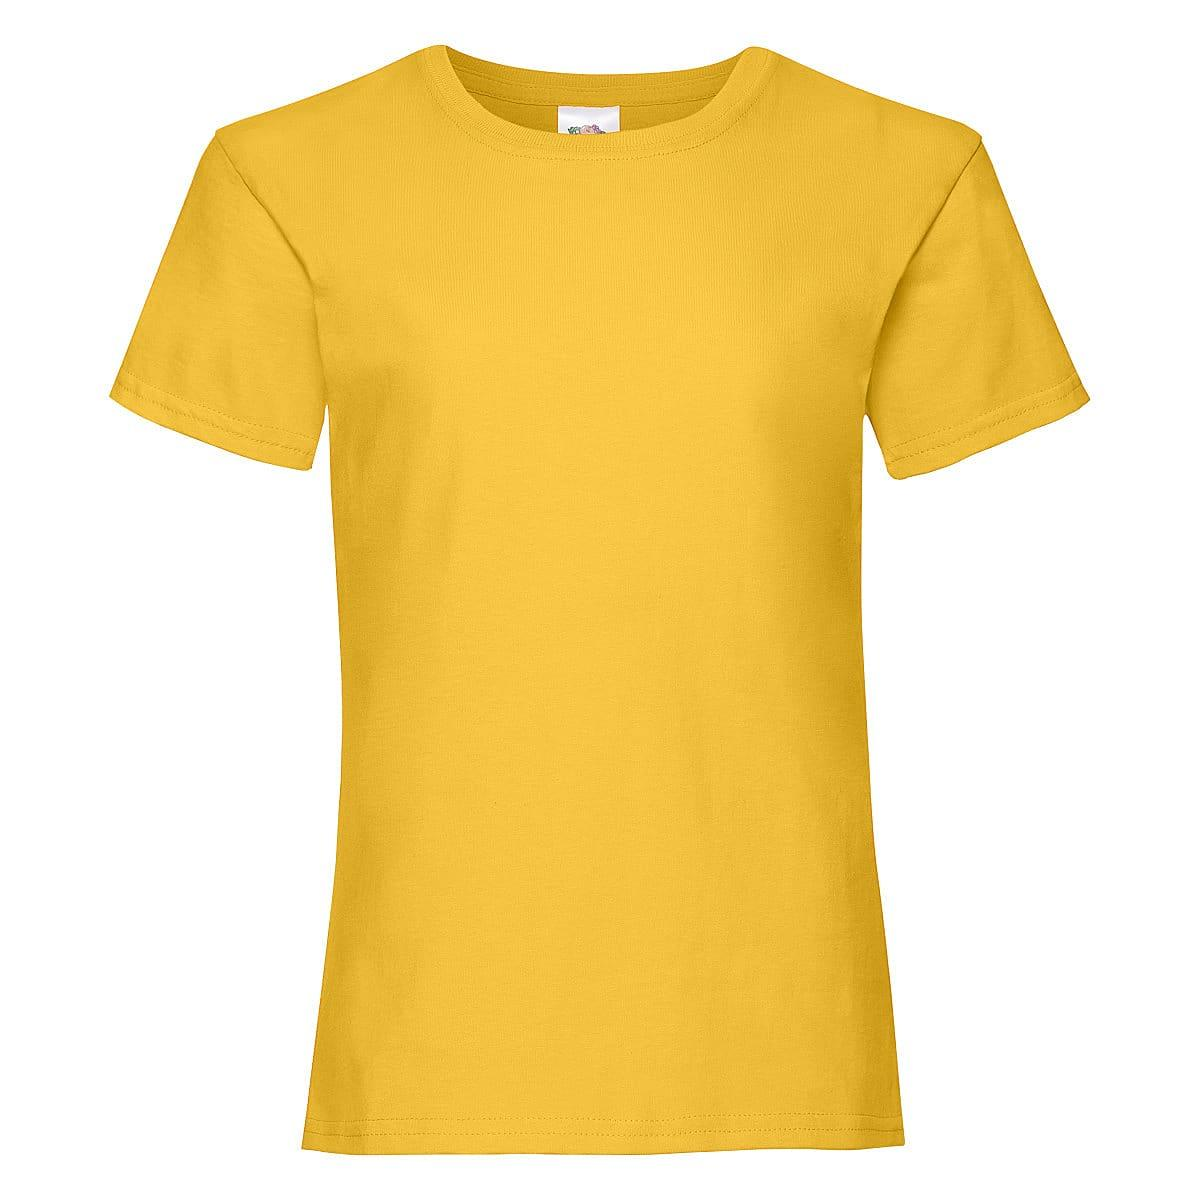 Fruit Of The Loom Girls Valueweight T-Shirt in Sunflower (Product Code: 61005)